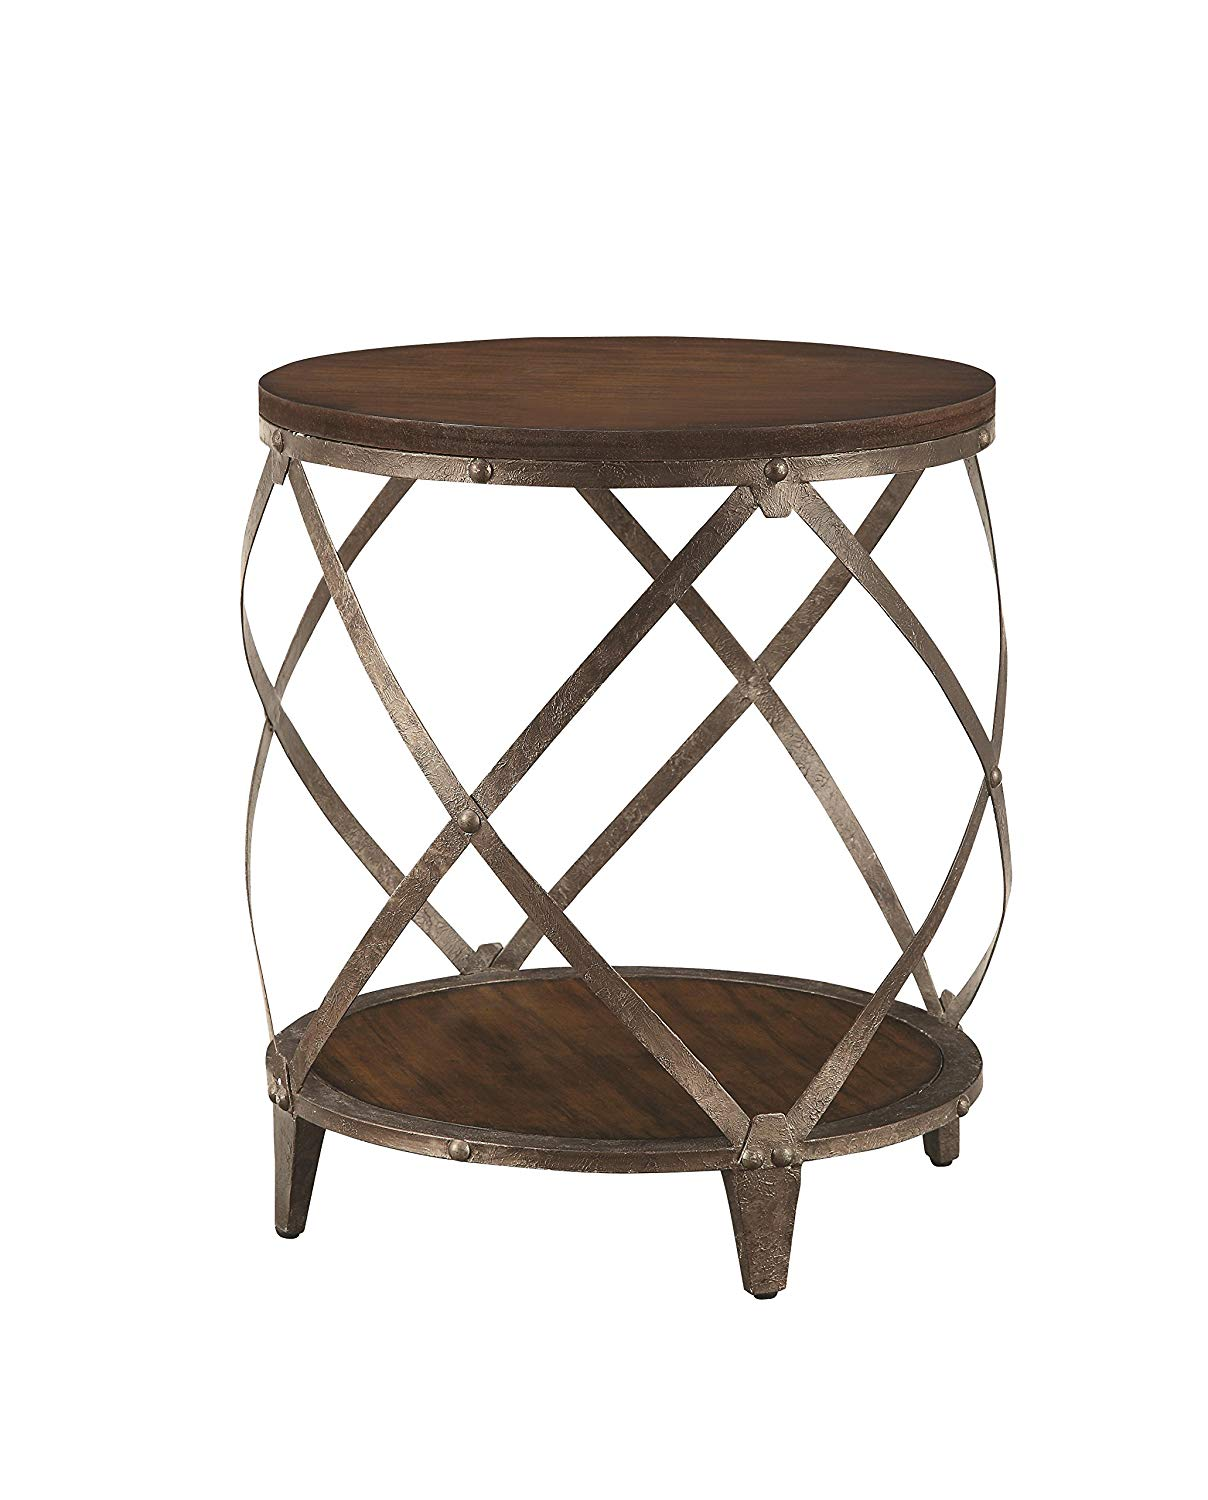 metal accent table with drum shape brown kitchen dining round wood and patio umbrella hole nate berkus bath rug inch high end outside chair covers acrylic nursery changing